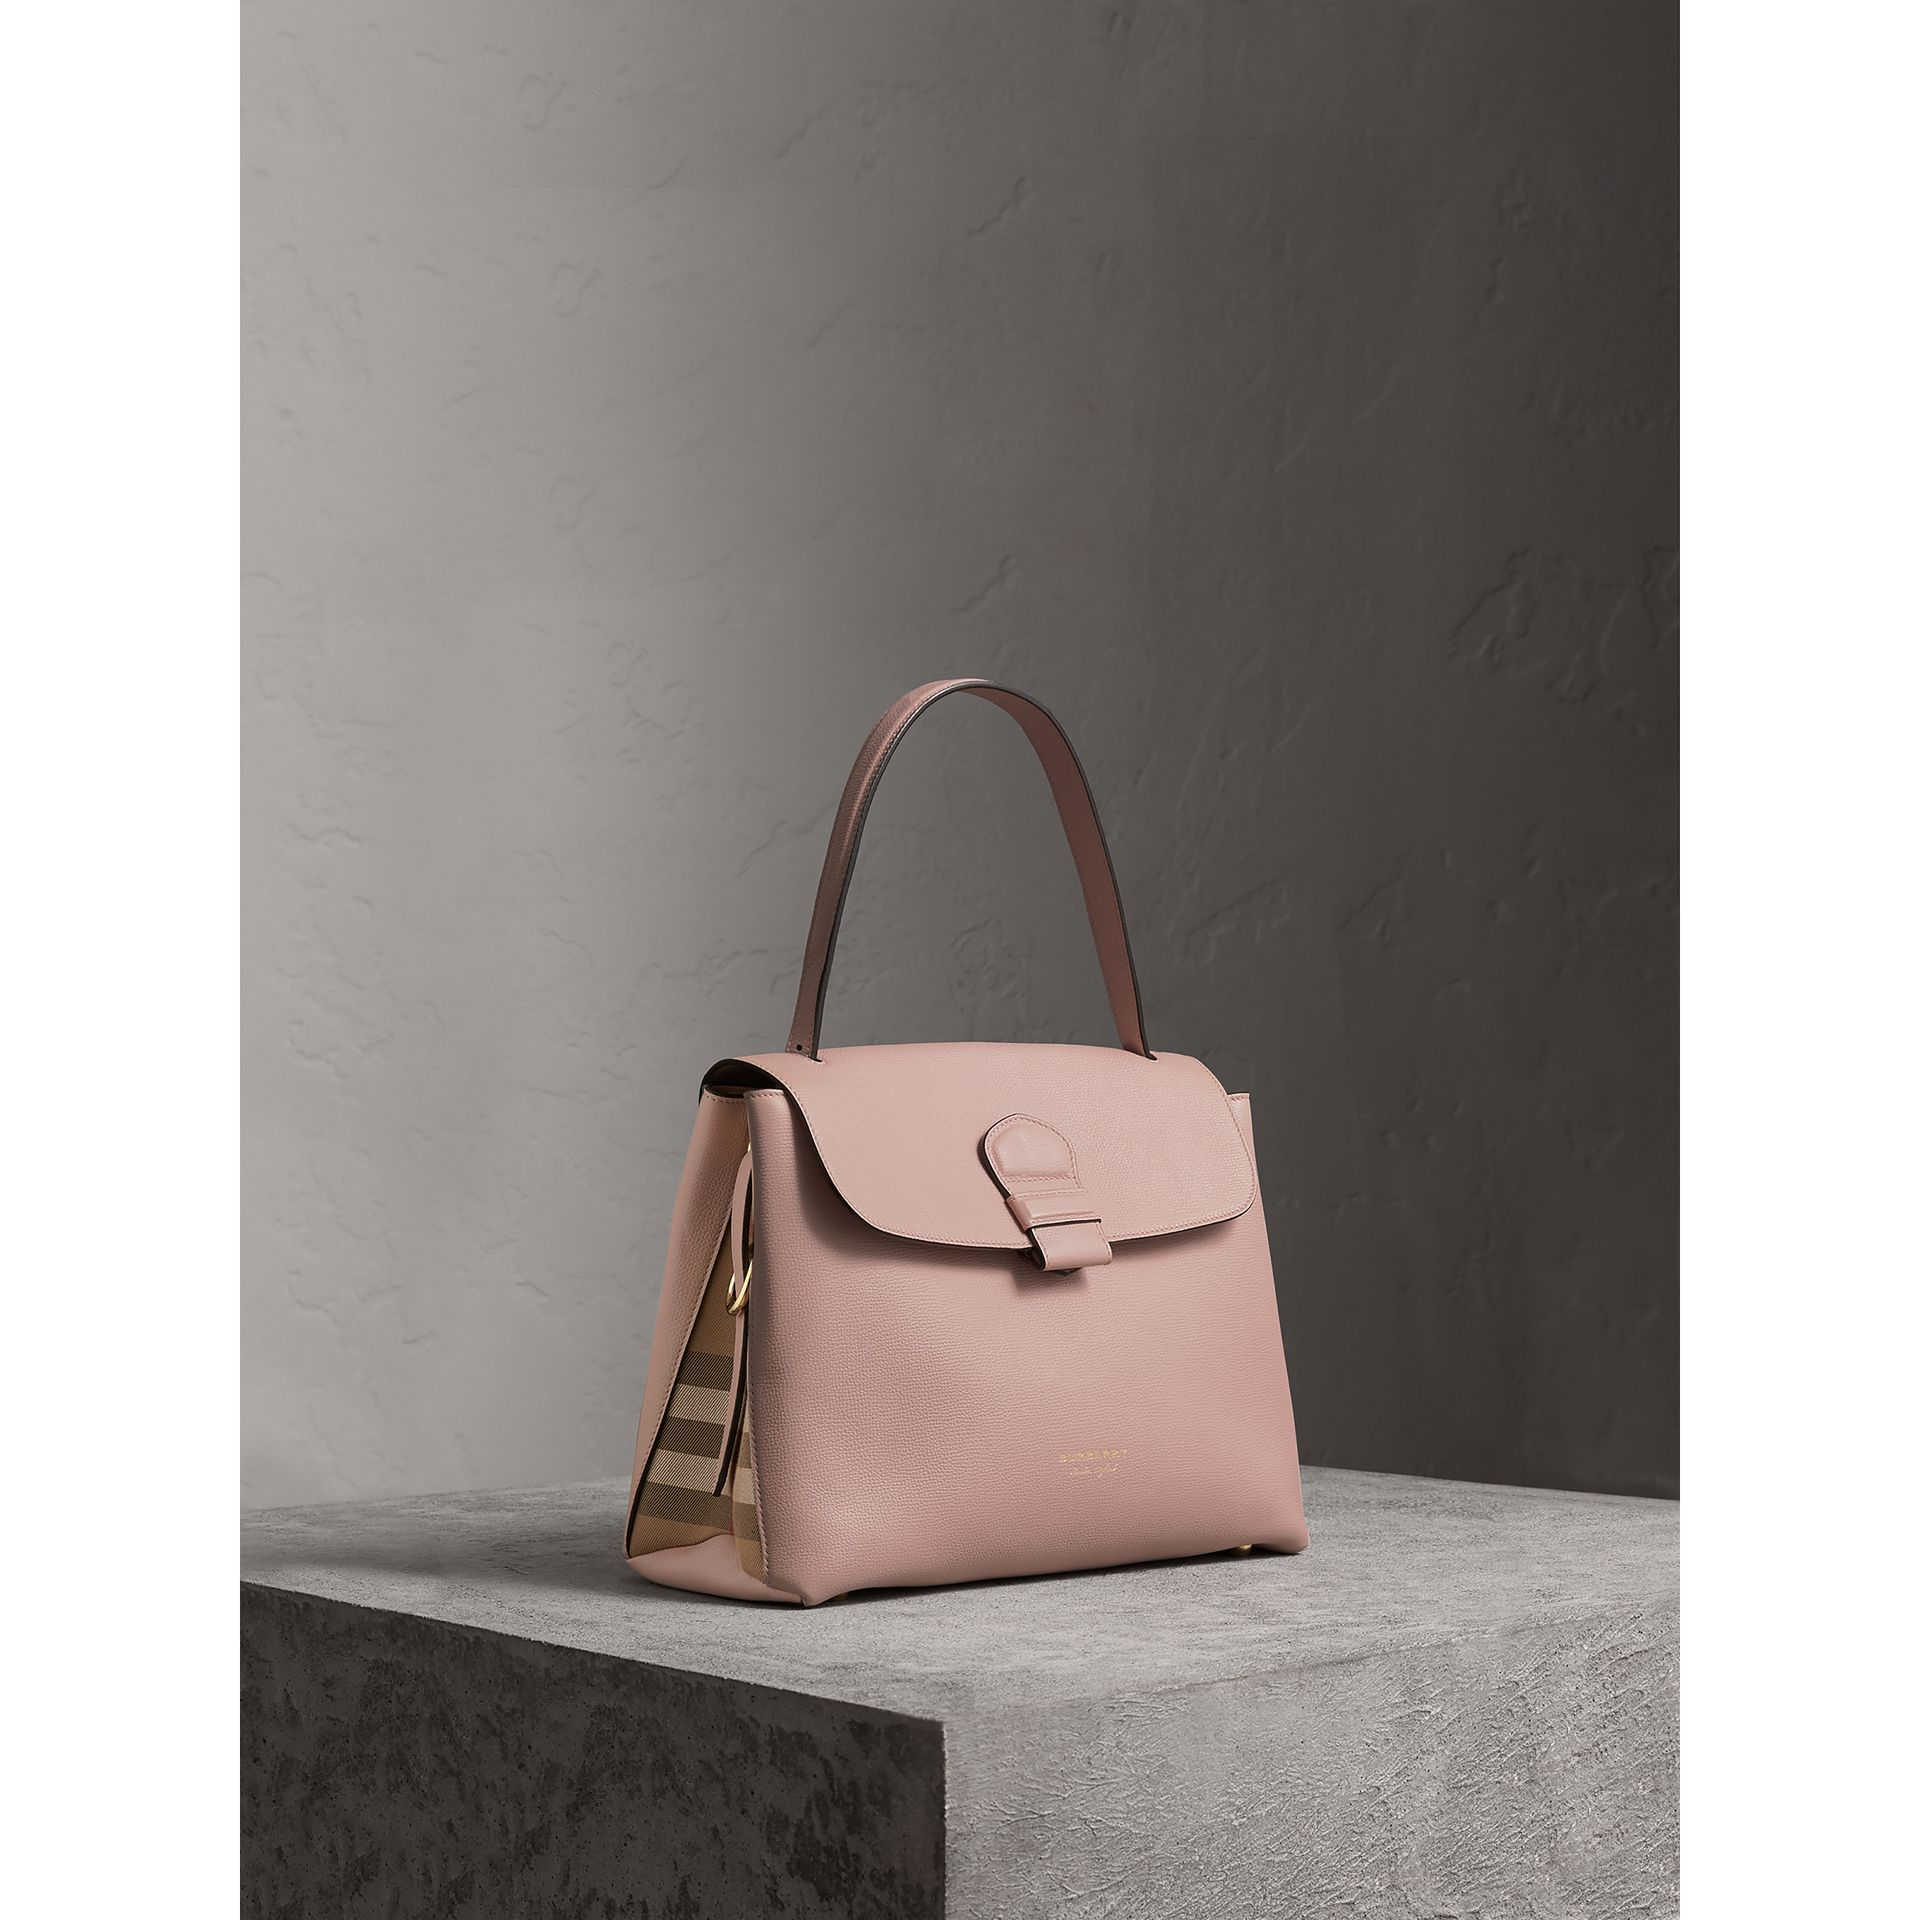 Medium Grainy Leather and House Check Tote Bag in Pale Orchid - Women | Burberry - gallery image 1